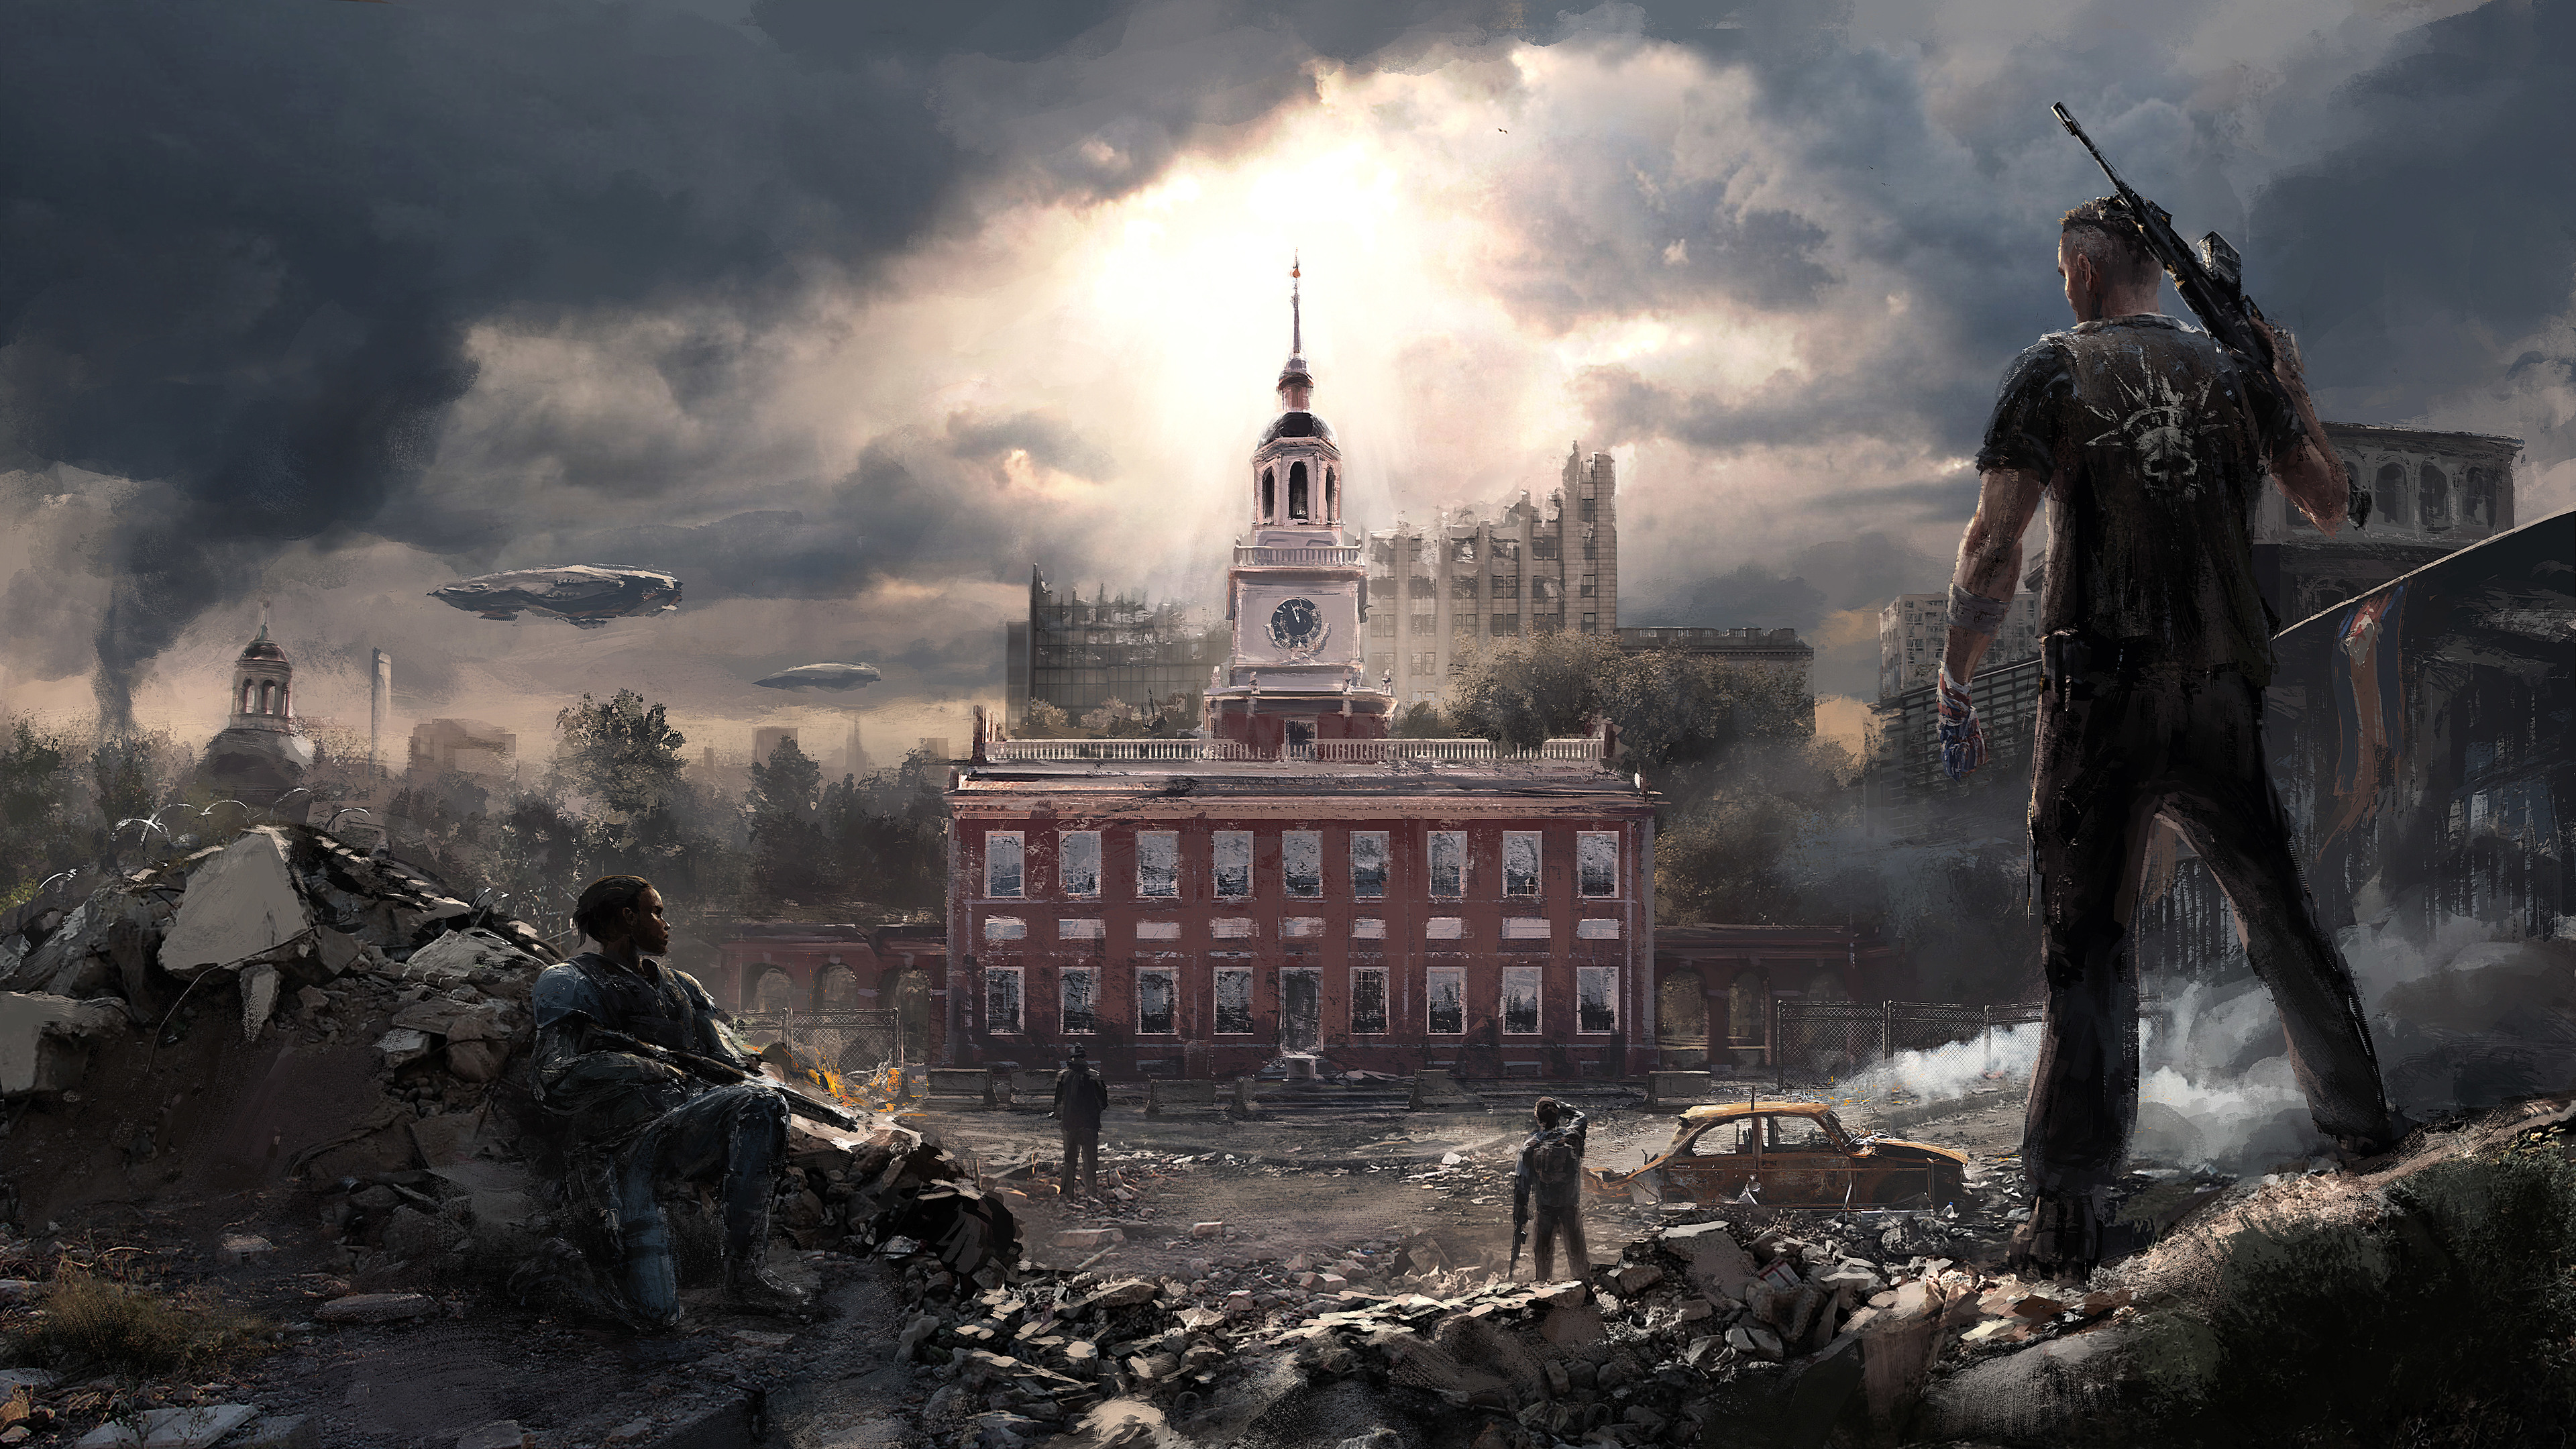 homefront the revolution 4k 1548526889 - Homefront The Revolution 4k - xbox games wallpapers, ps games wallpapers, pc games wallpapers, homefront the revolution wallpapers, hd-wallpapers, games wallpapers, deviantart wallpapers, 8k wallpapers, 5k wallpapers, 4k-wallpapers, 10k wallpapers